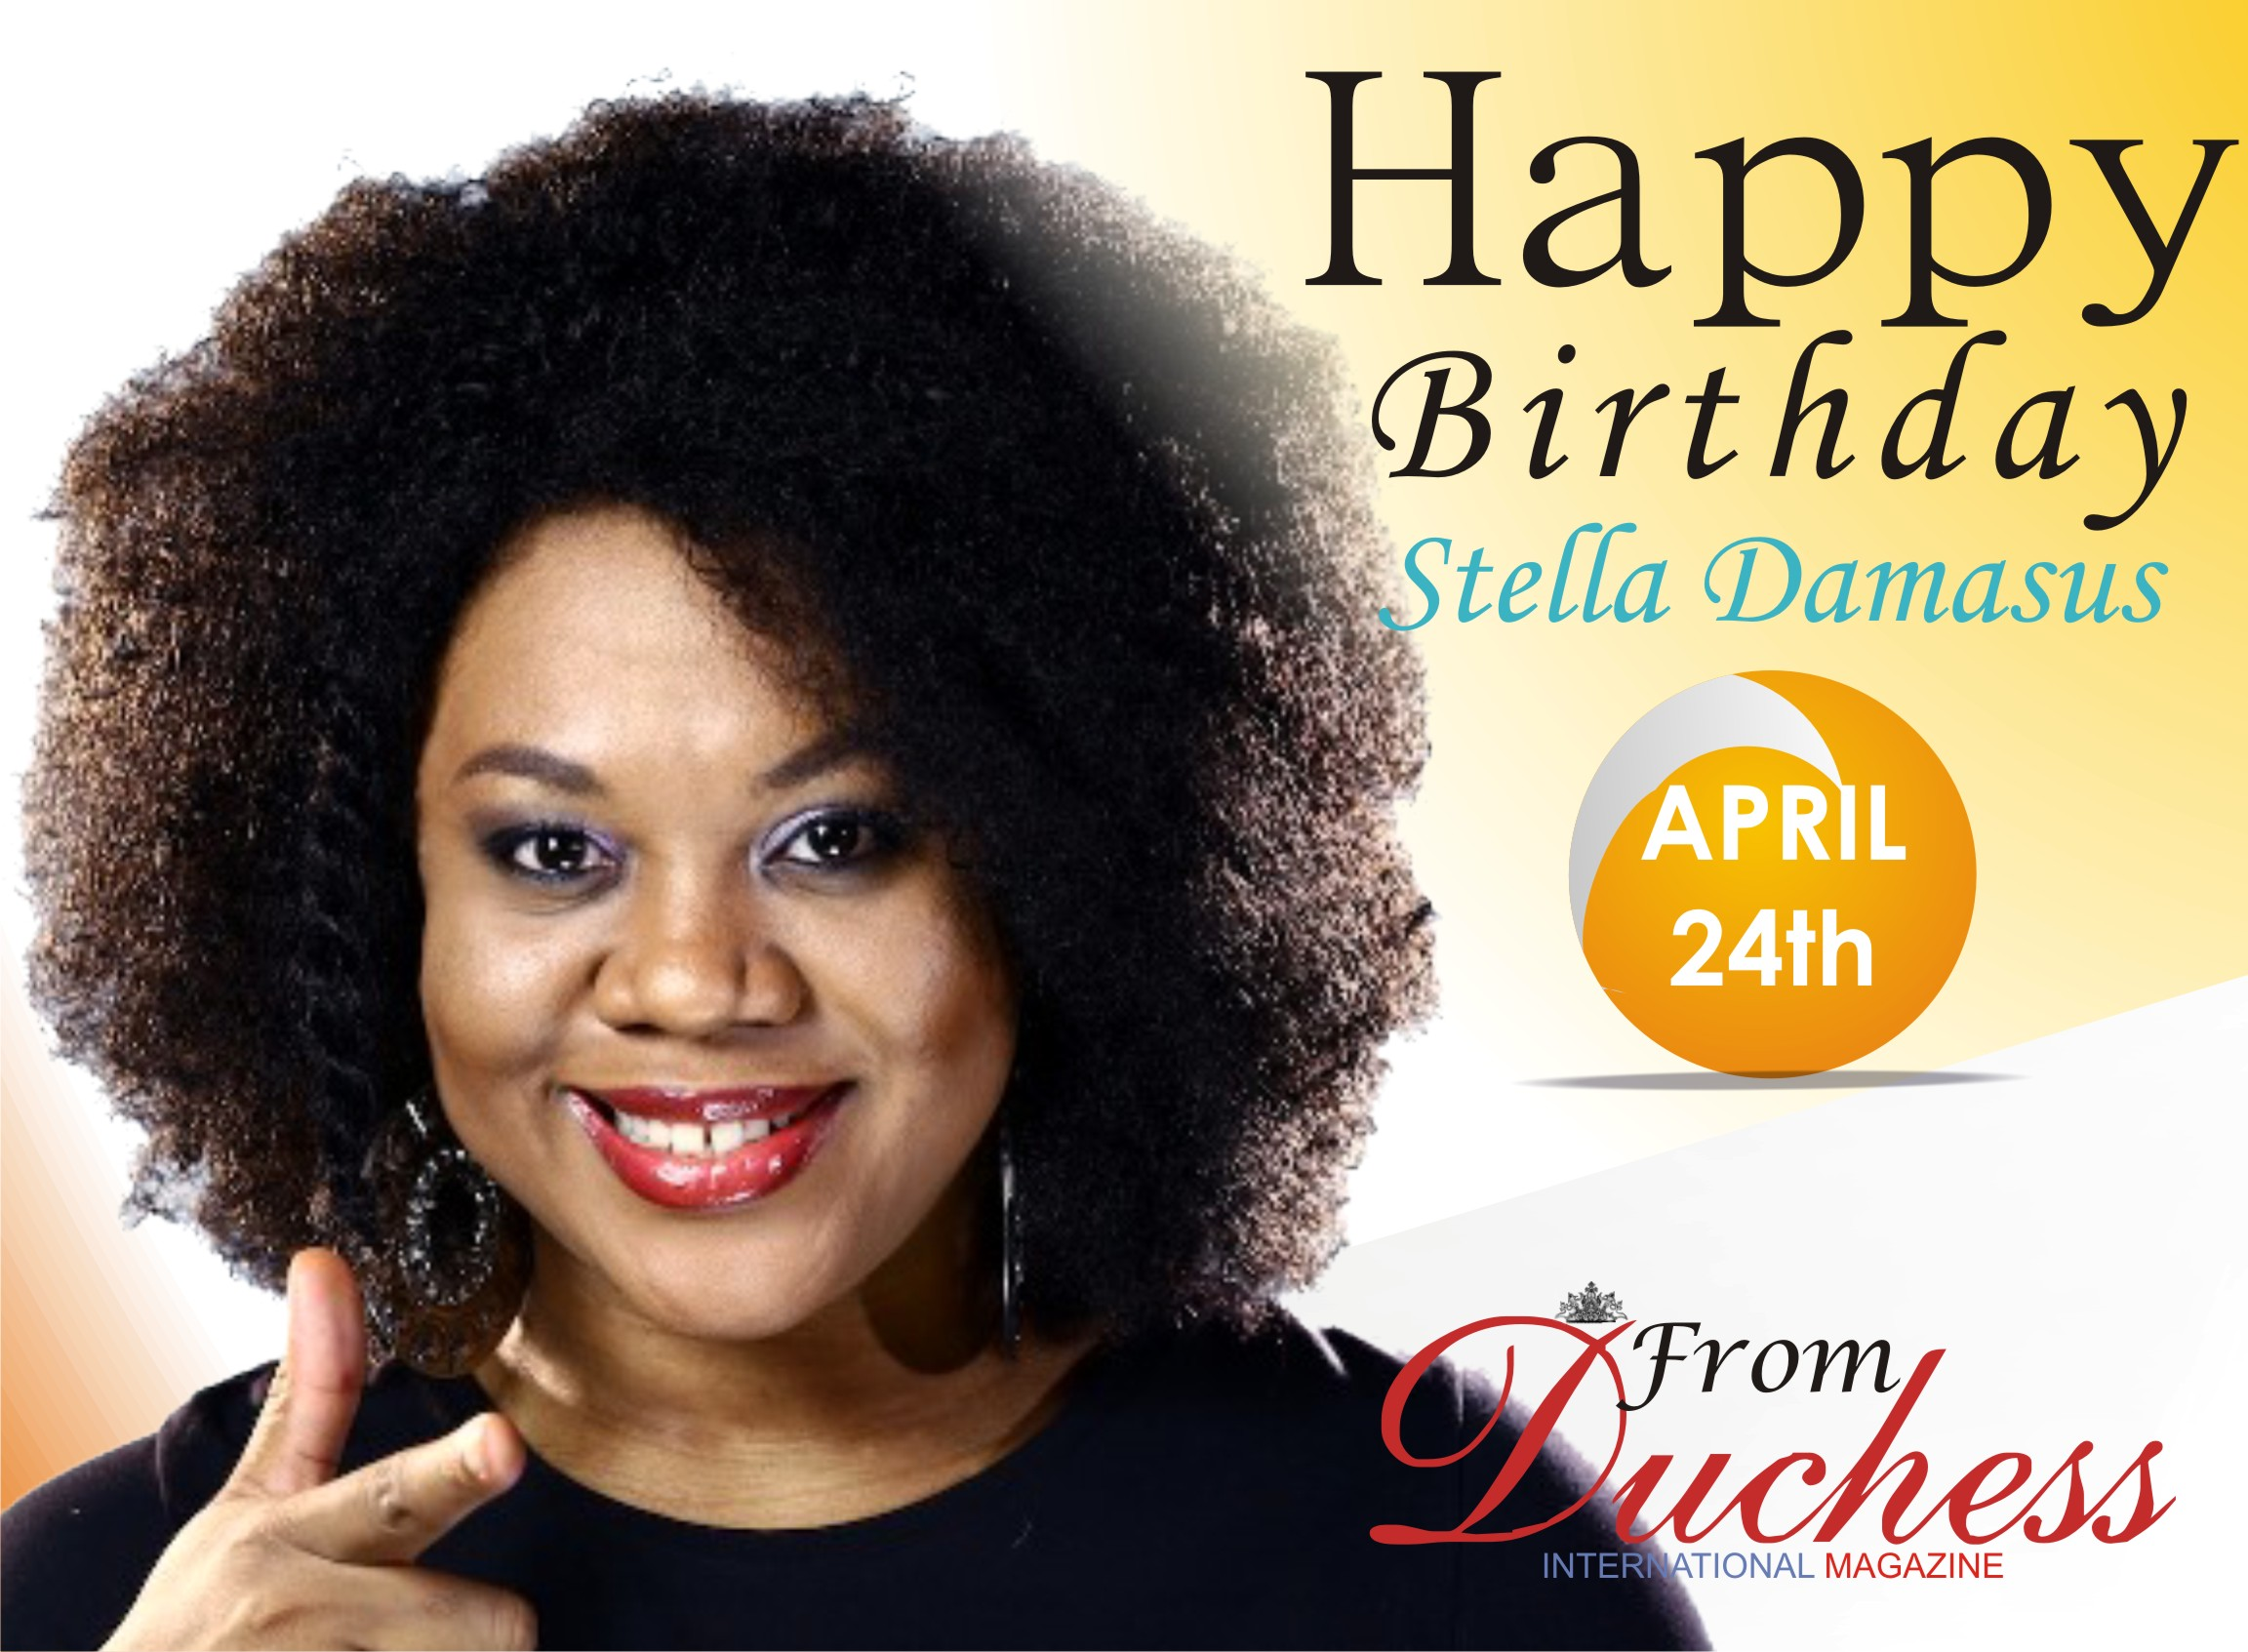 Nollywood Actress and Singer Stella Damascus Turns 38 Today.